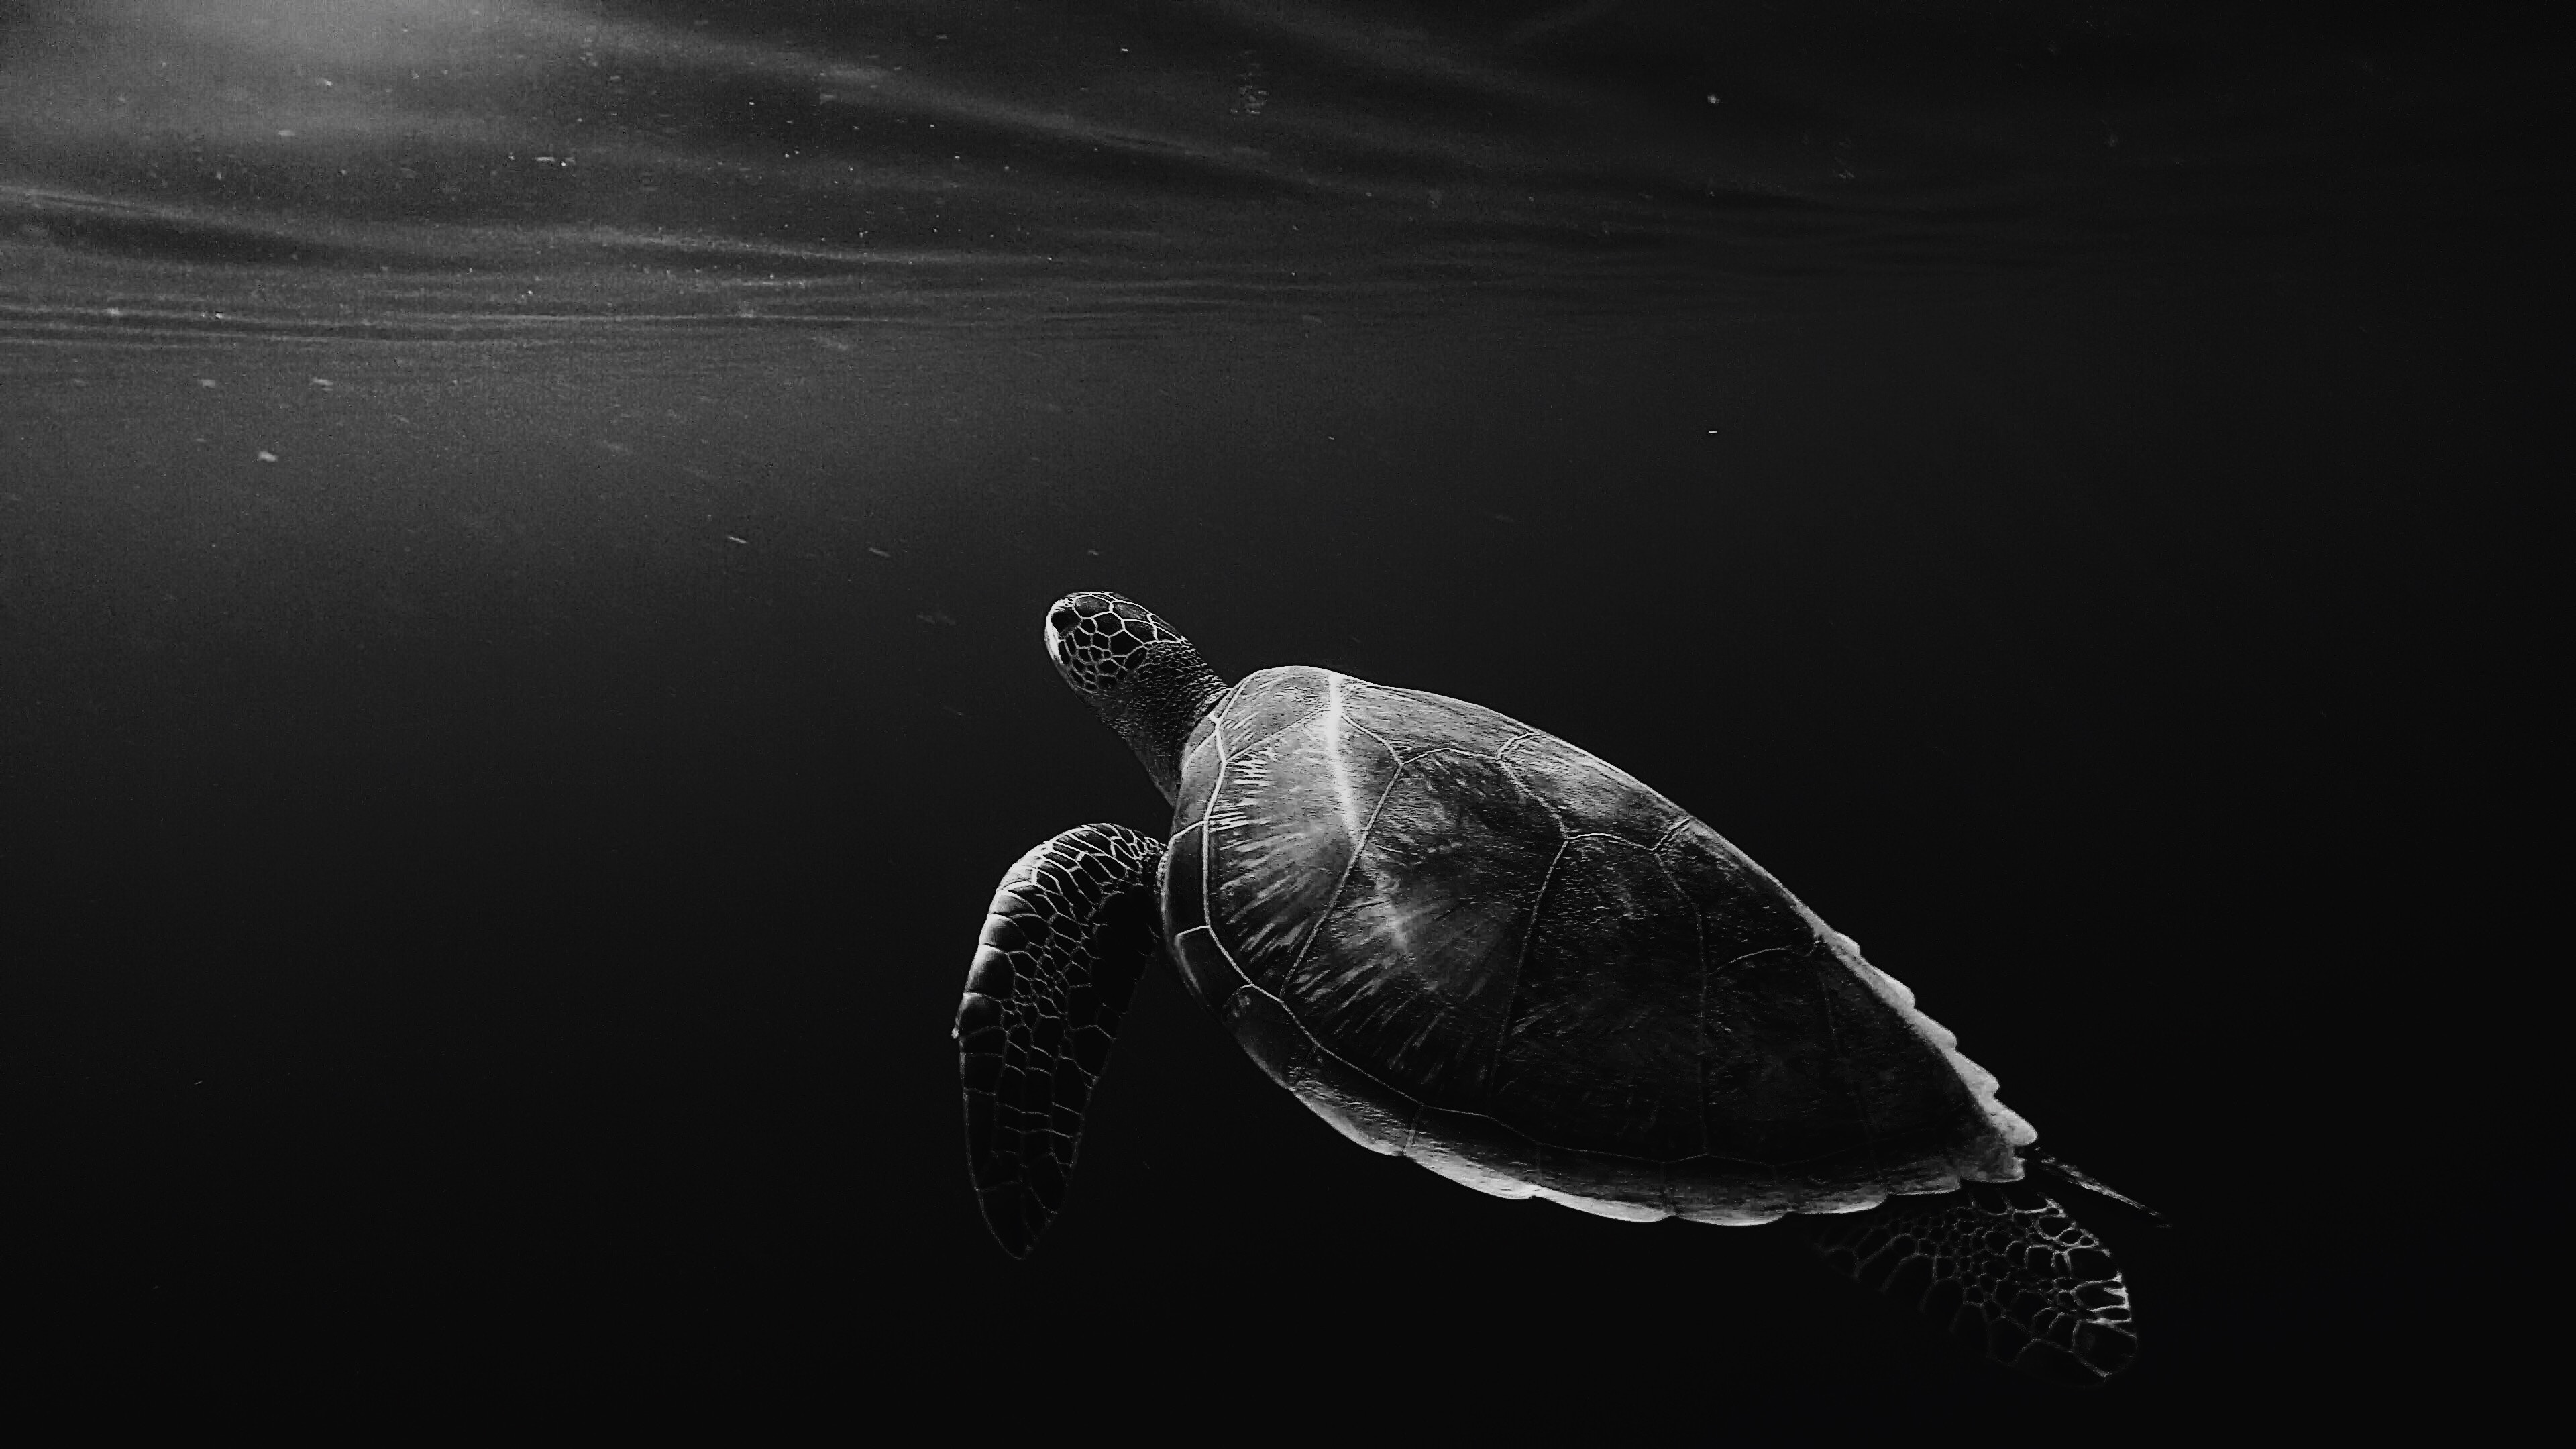 Turtle Oled 4k Hd Animals 4k Wallpapers Images